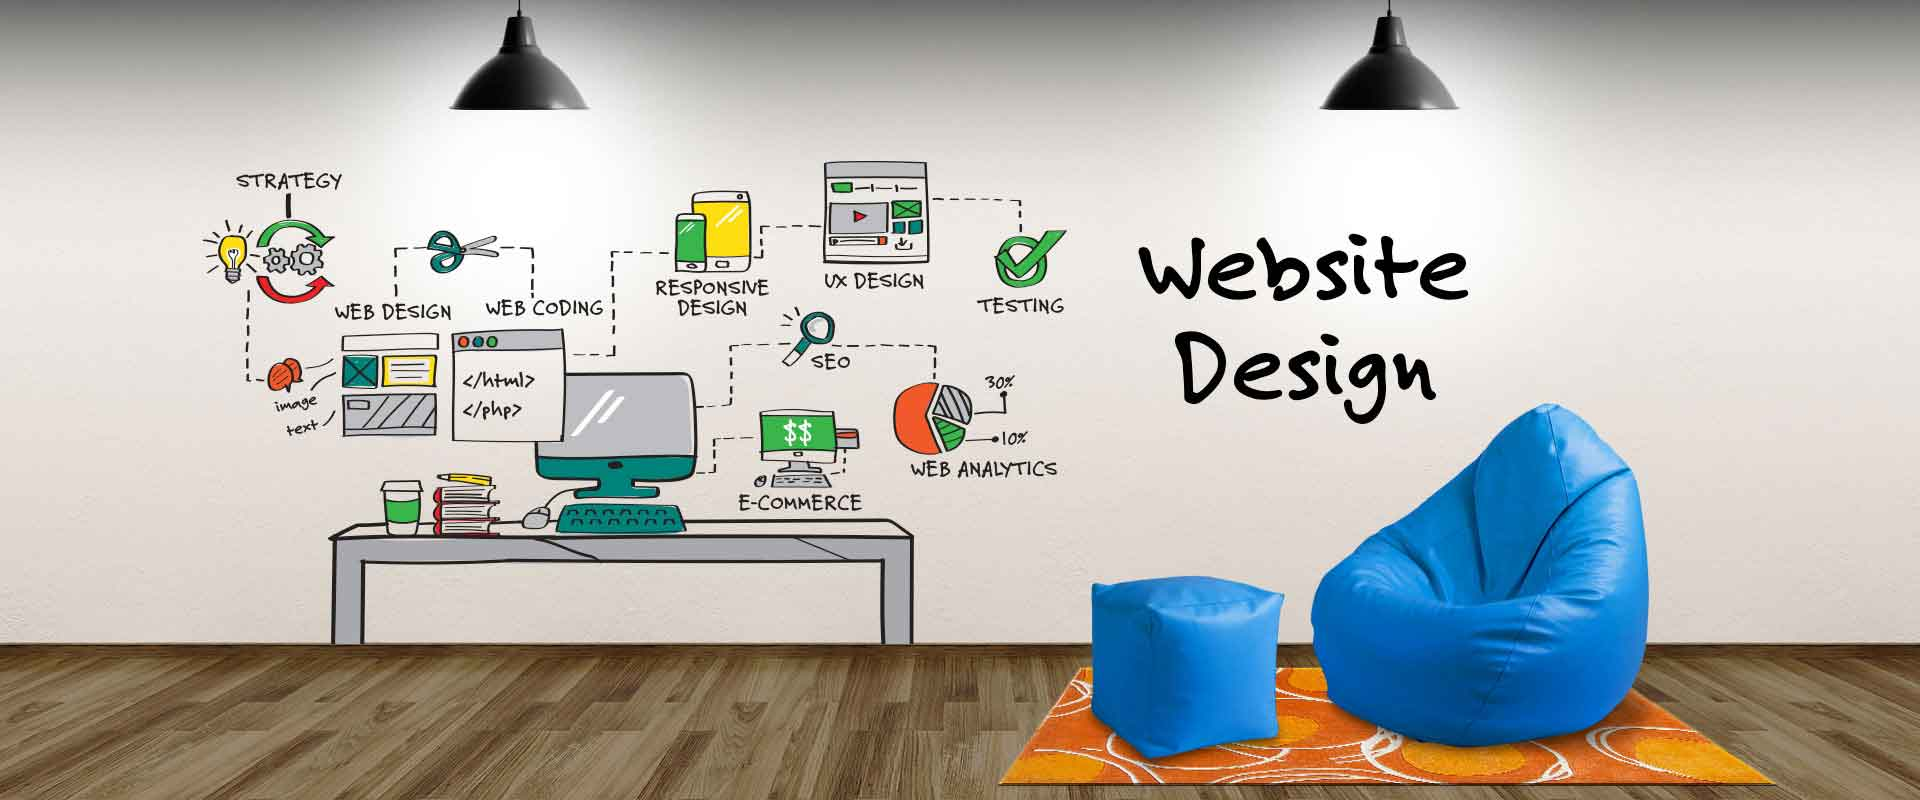 Website-Design-Banner-1